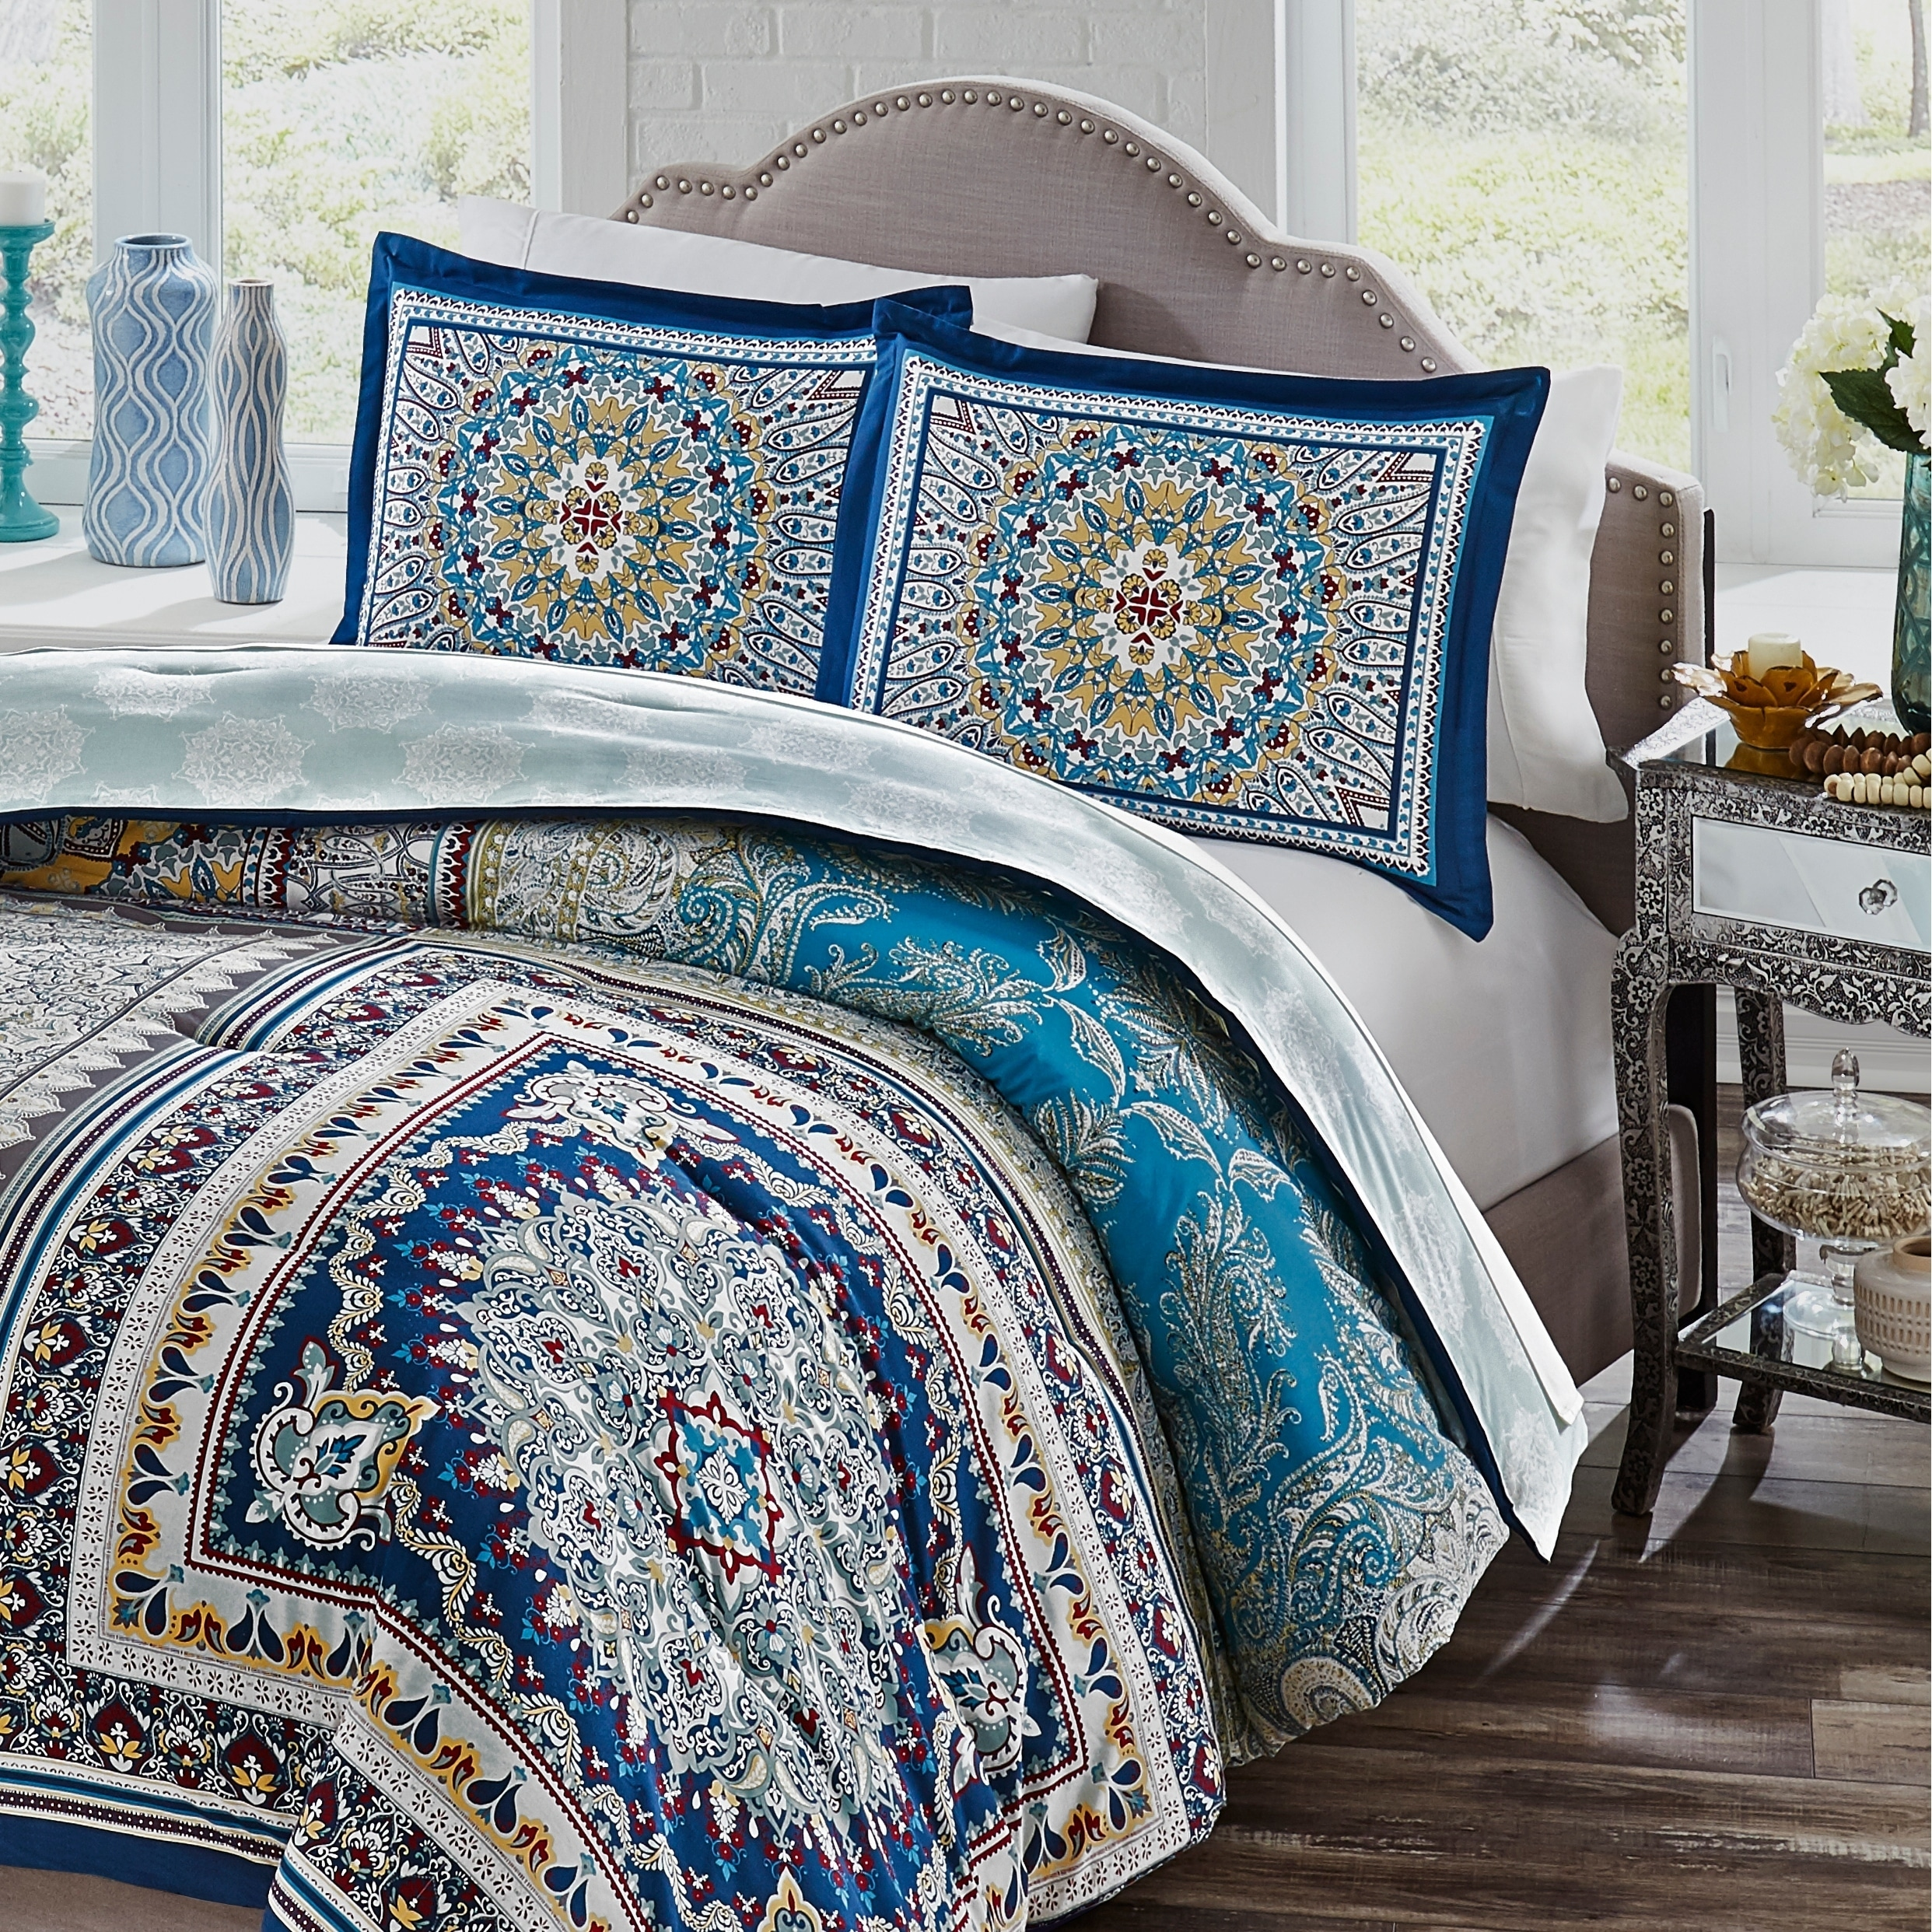 chic product bohemian white comforter case set duvet mandala ombre blue boho bedding twin flower one with pillow